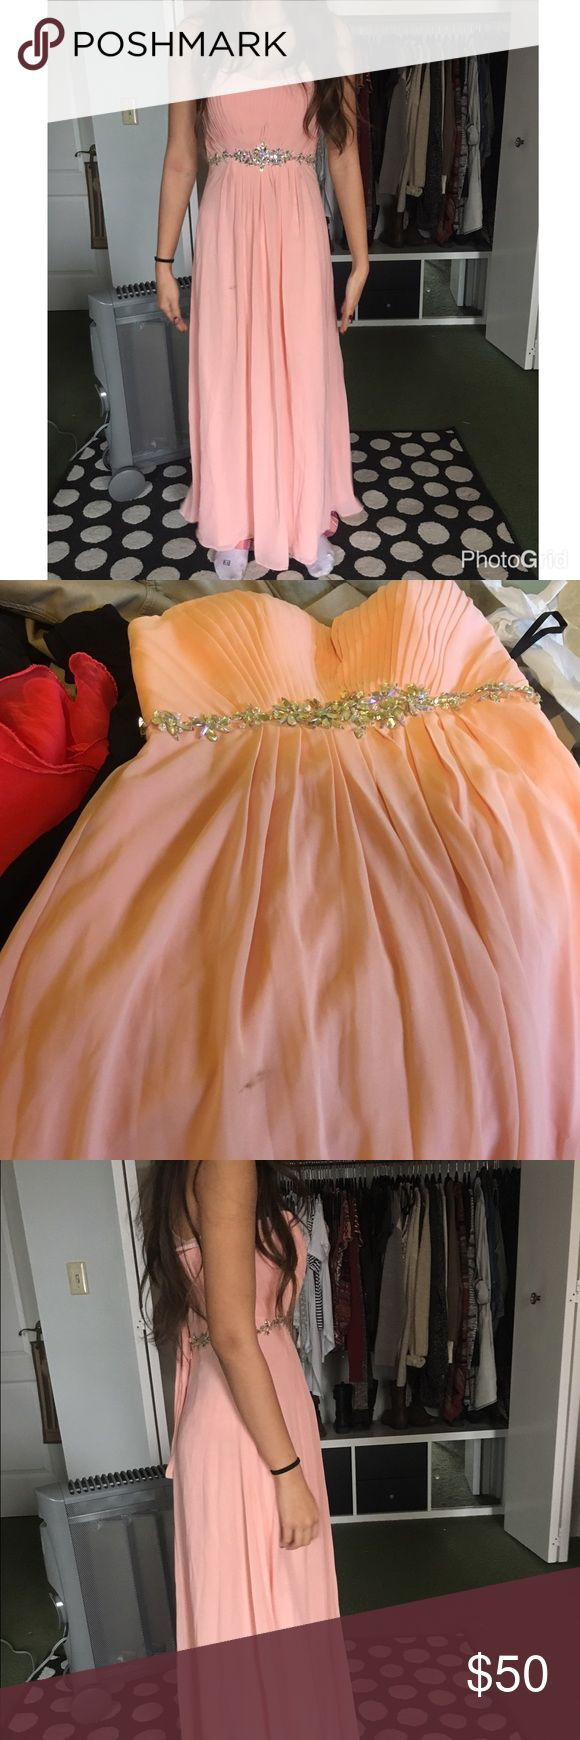 *SLIGHT FLAW* LIGHT PINK PROM/BRIDESMAID DRESS AMAZINGLY GORGEOUS DRESS!!! Only flaw is like a dirt stain on the front, shown in pics. I'm looking for someone who can clean it, because the person I bought this from lied and hid the stain in pics. SIZE XS-S Model is an XS 0-2 and because of the lace up back it will fit bigger! We had to tighten it all the way for her. Perfect for prom, formals, bridesmaids, maid of honor, etc.! Price low so you can pay for the cleaning - if I find a place to…